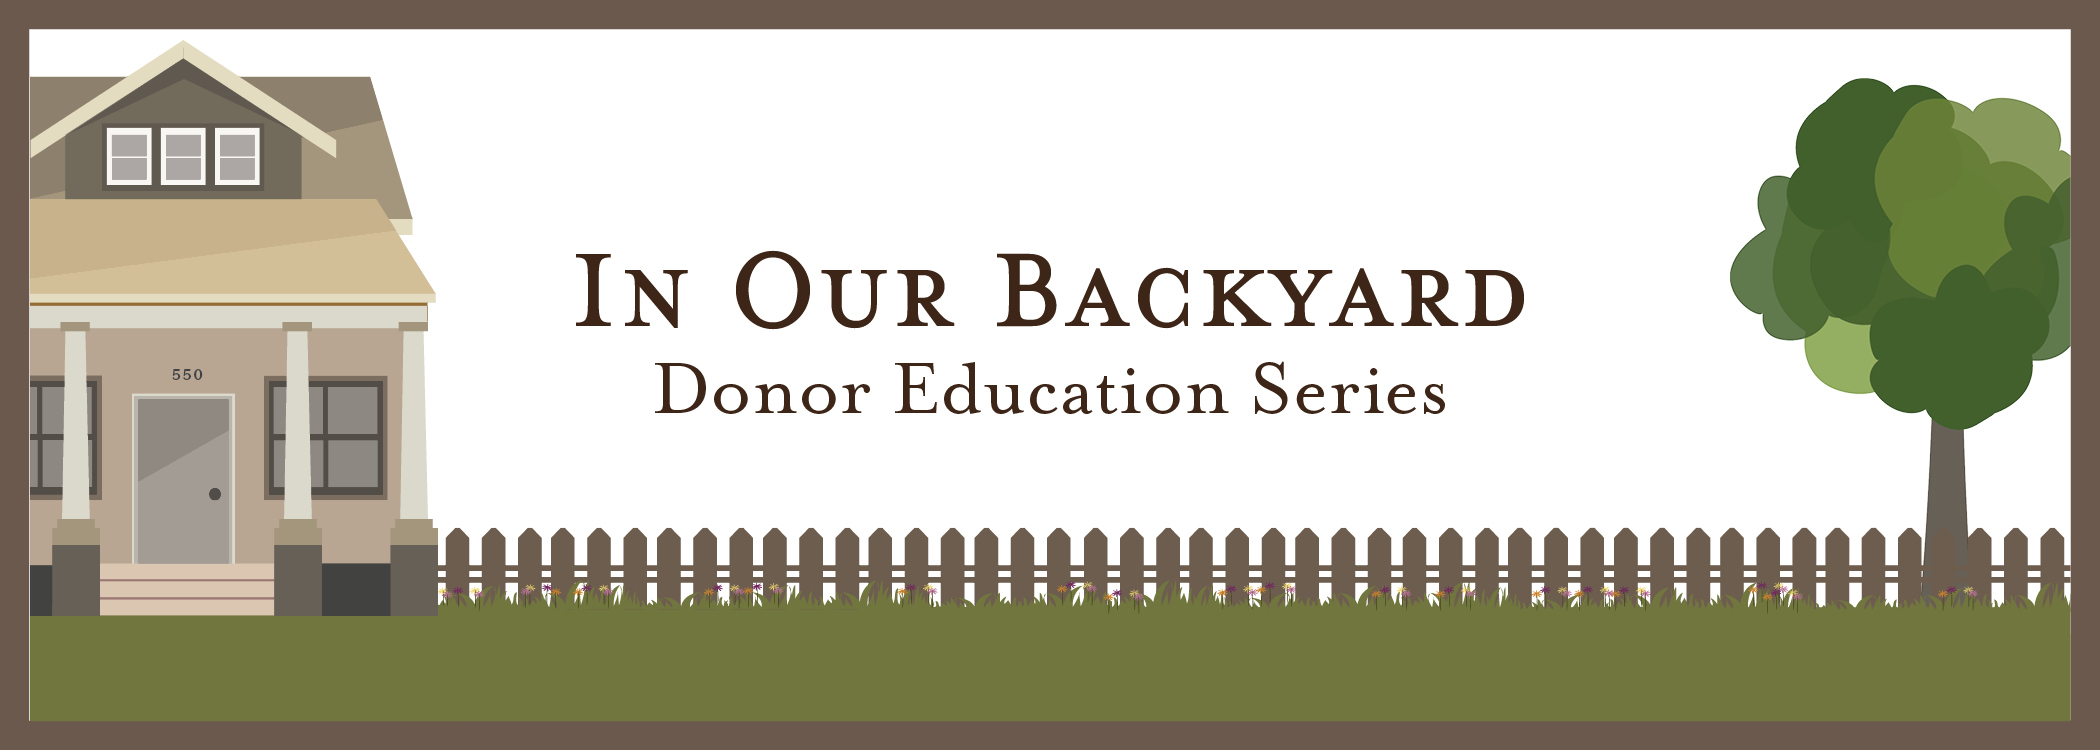 In Our Backyard Donor Education